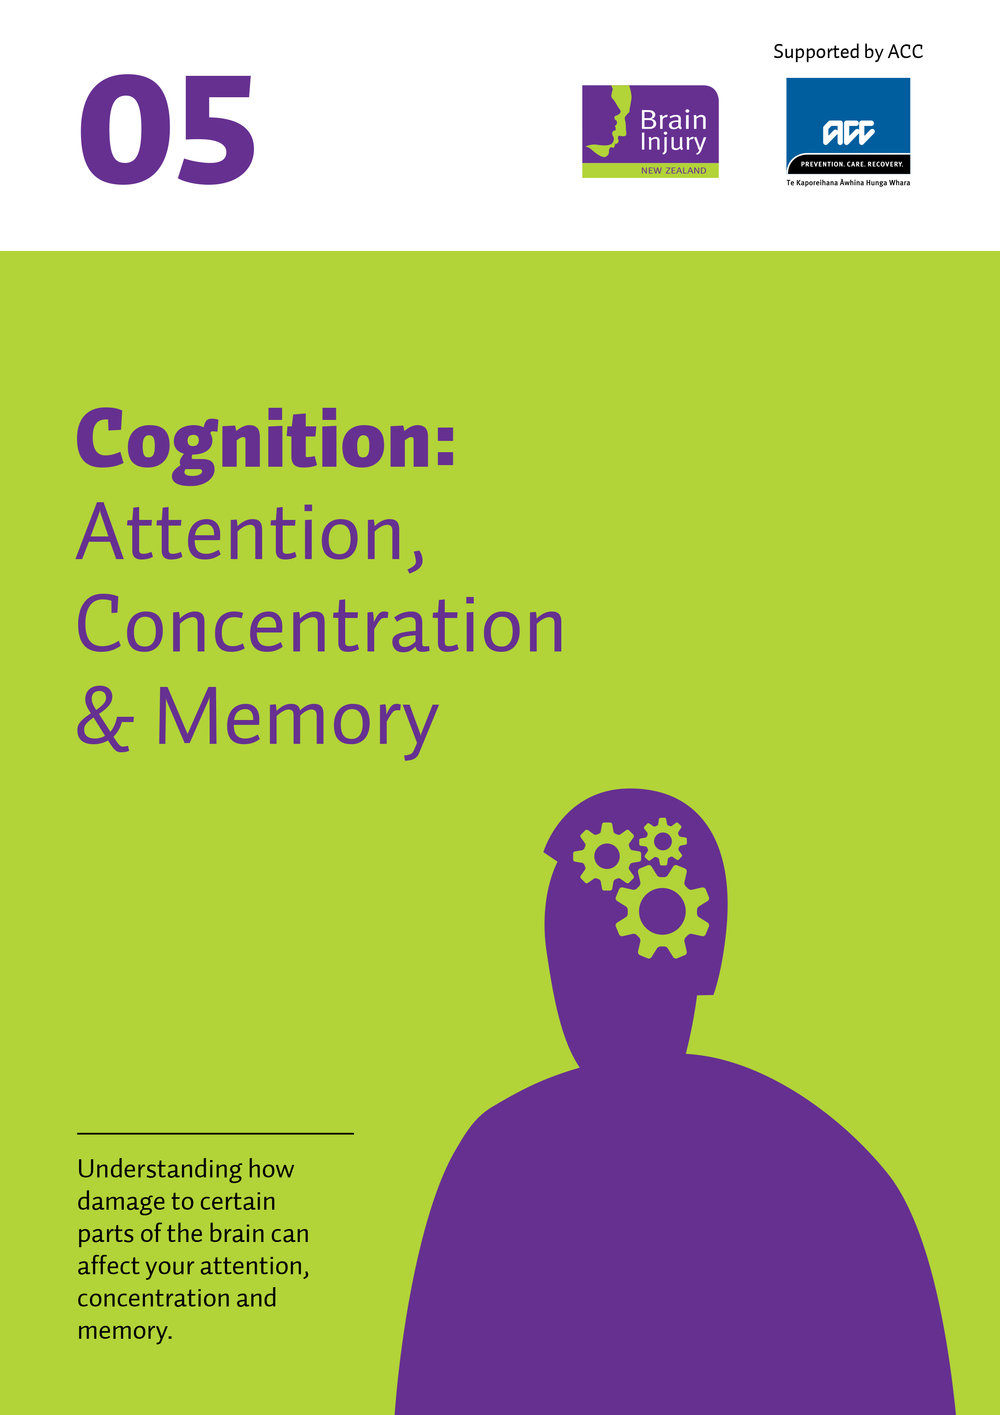 05 Cognition: Attention, Concentration & Memory